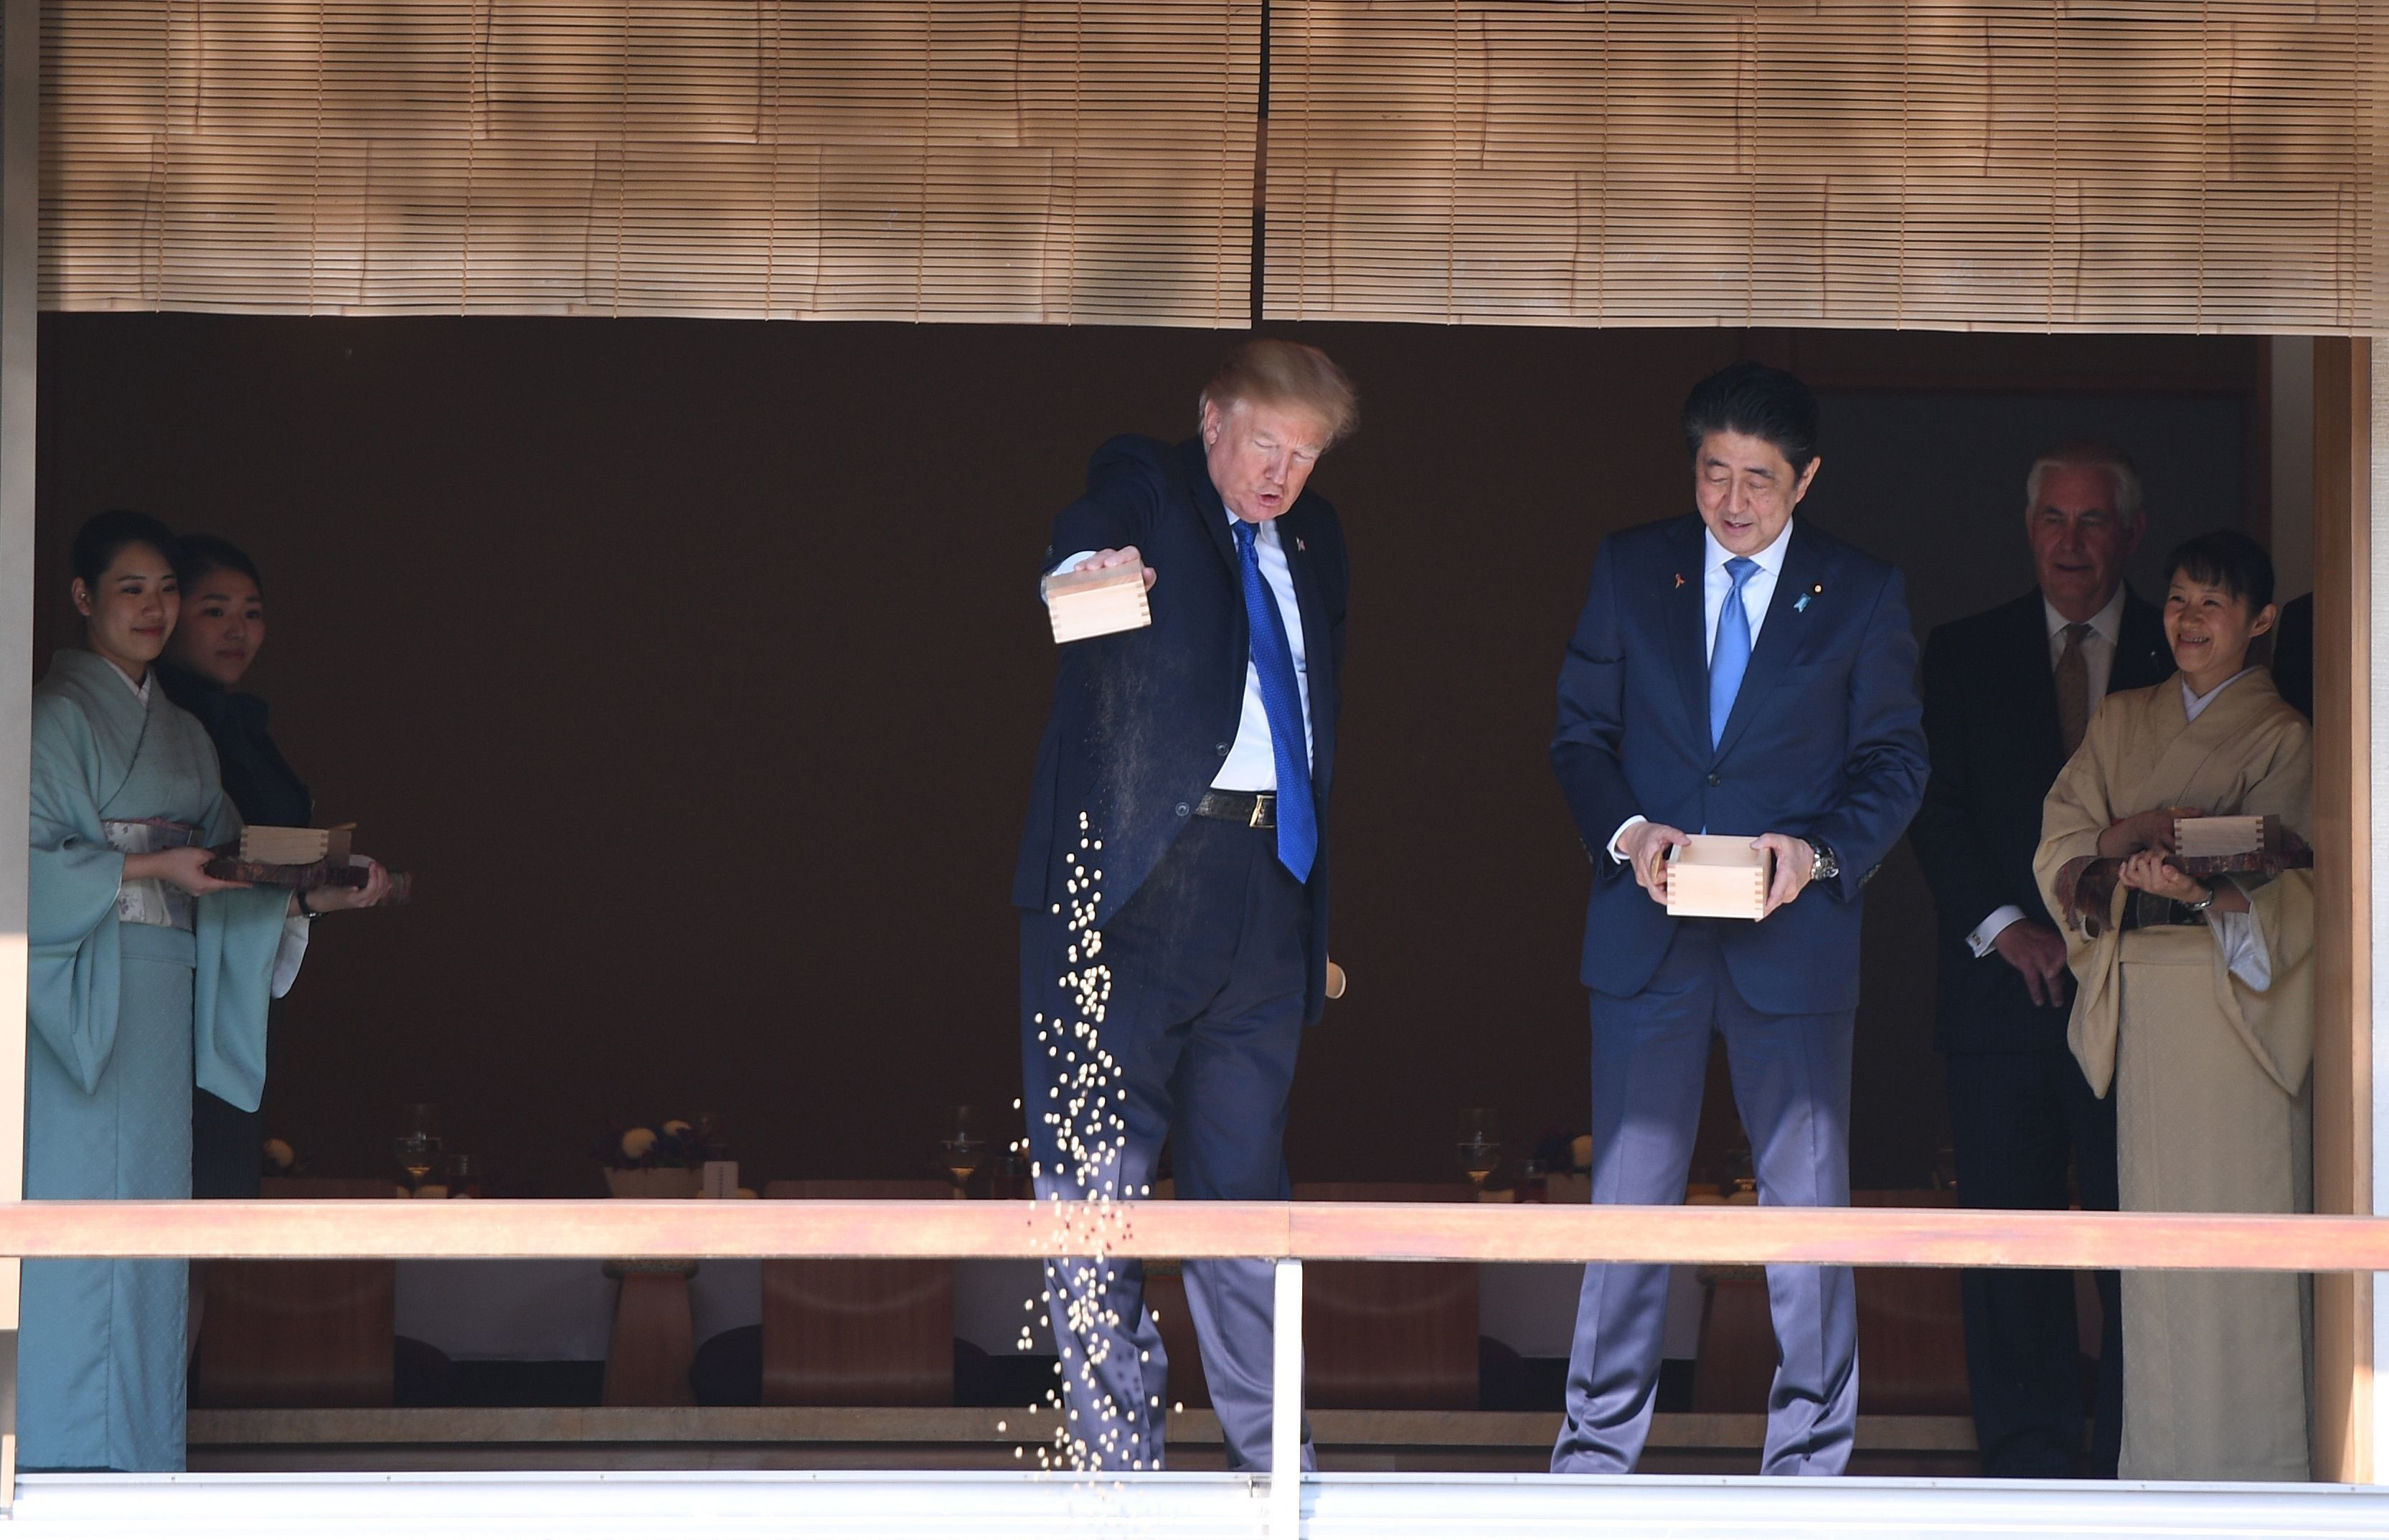 US President Donald Trump (C) feeds koi fish as Japanese Prime Minister Shinzo Abe (R)looks on during a welcoming ceremony in Tokyo on November 6, 2017. Trump lashed out at the US trade relationship with Japan, saying it was 'not fair and open', as he prepared for formal talks with his Japanese counterpart. / AFP PHOTO / JIM WATSON        (Photo credit should read JIM WATSON/AFP/Getty Images)